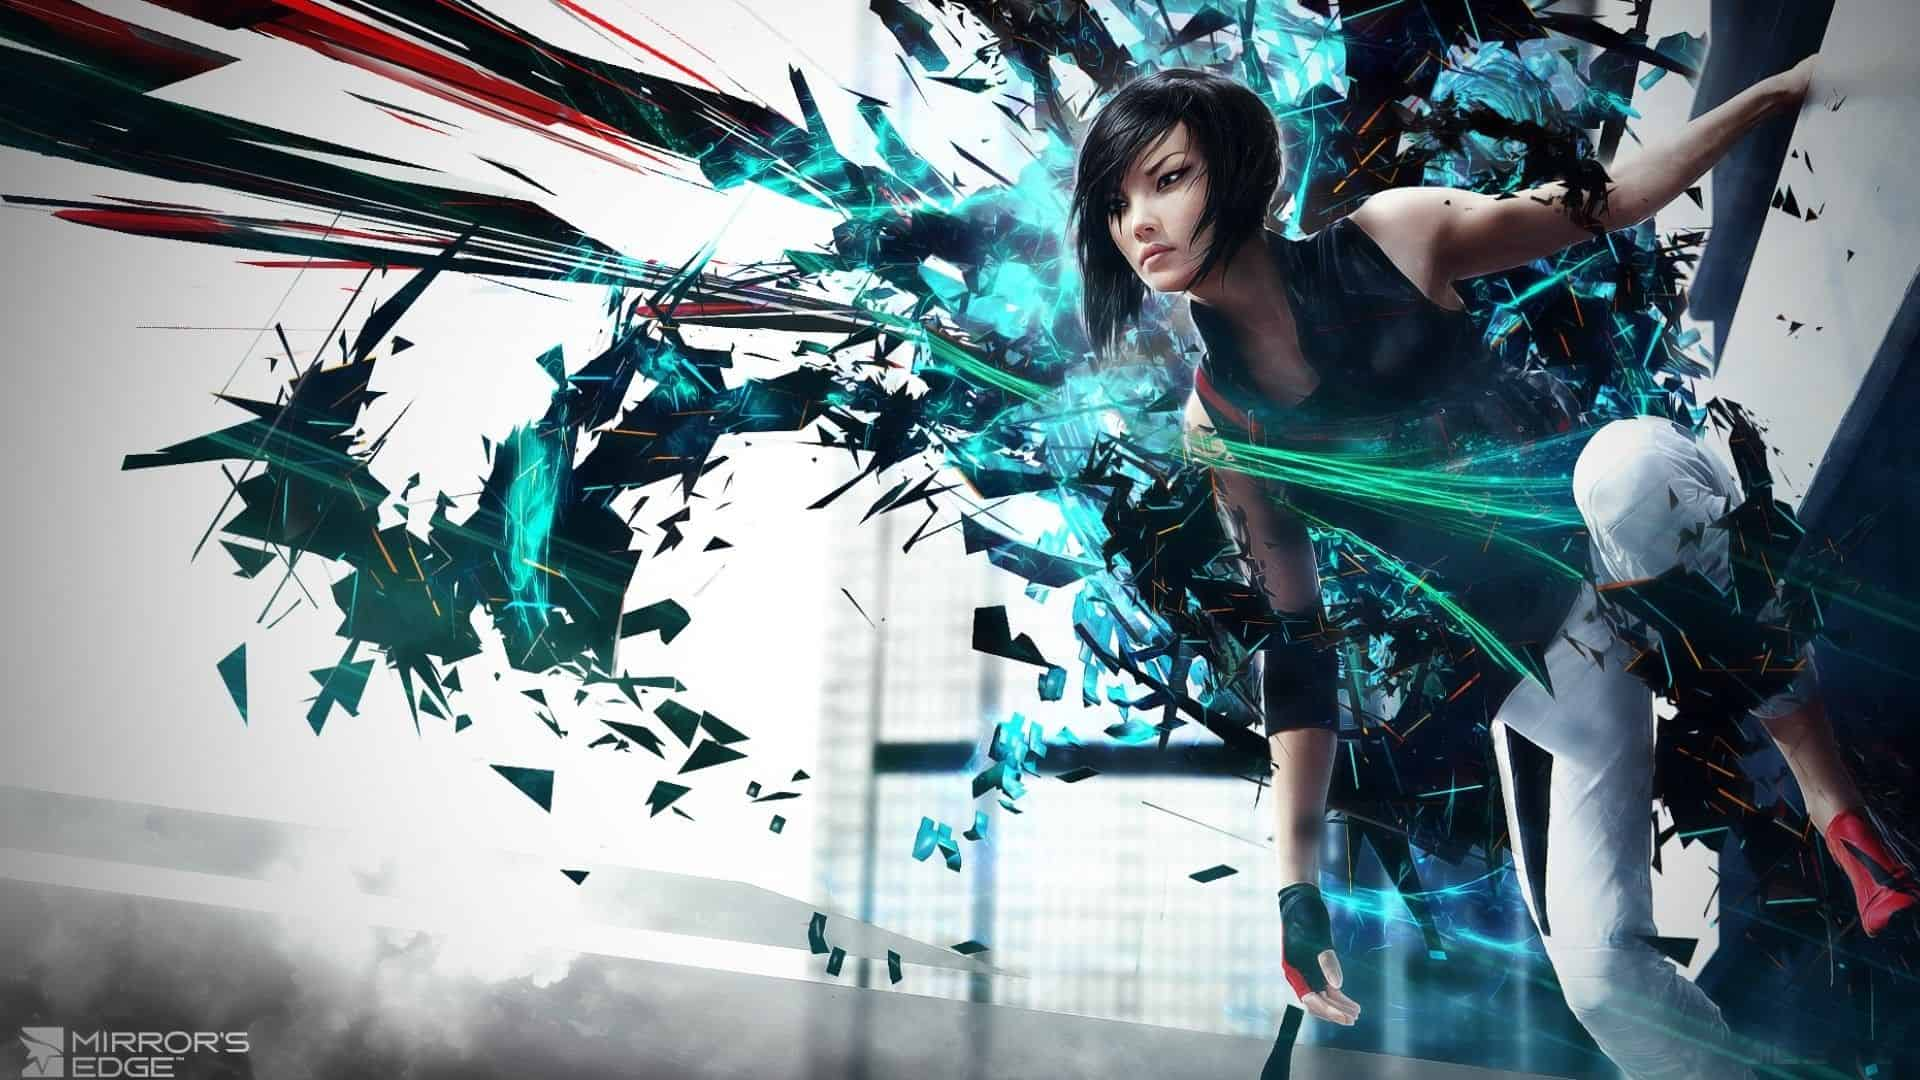 'Mirror's Edge Catalyst' Beta Final Impressions: Oh How We Hardly Knew Ye